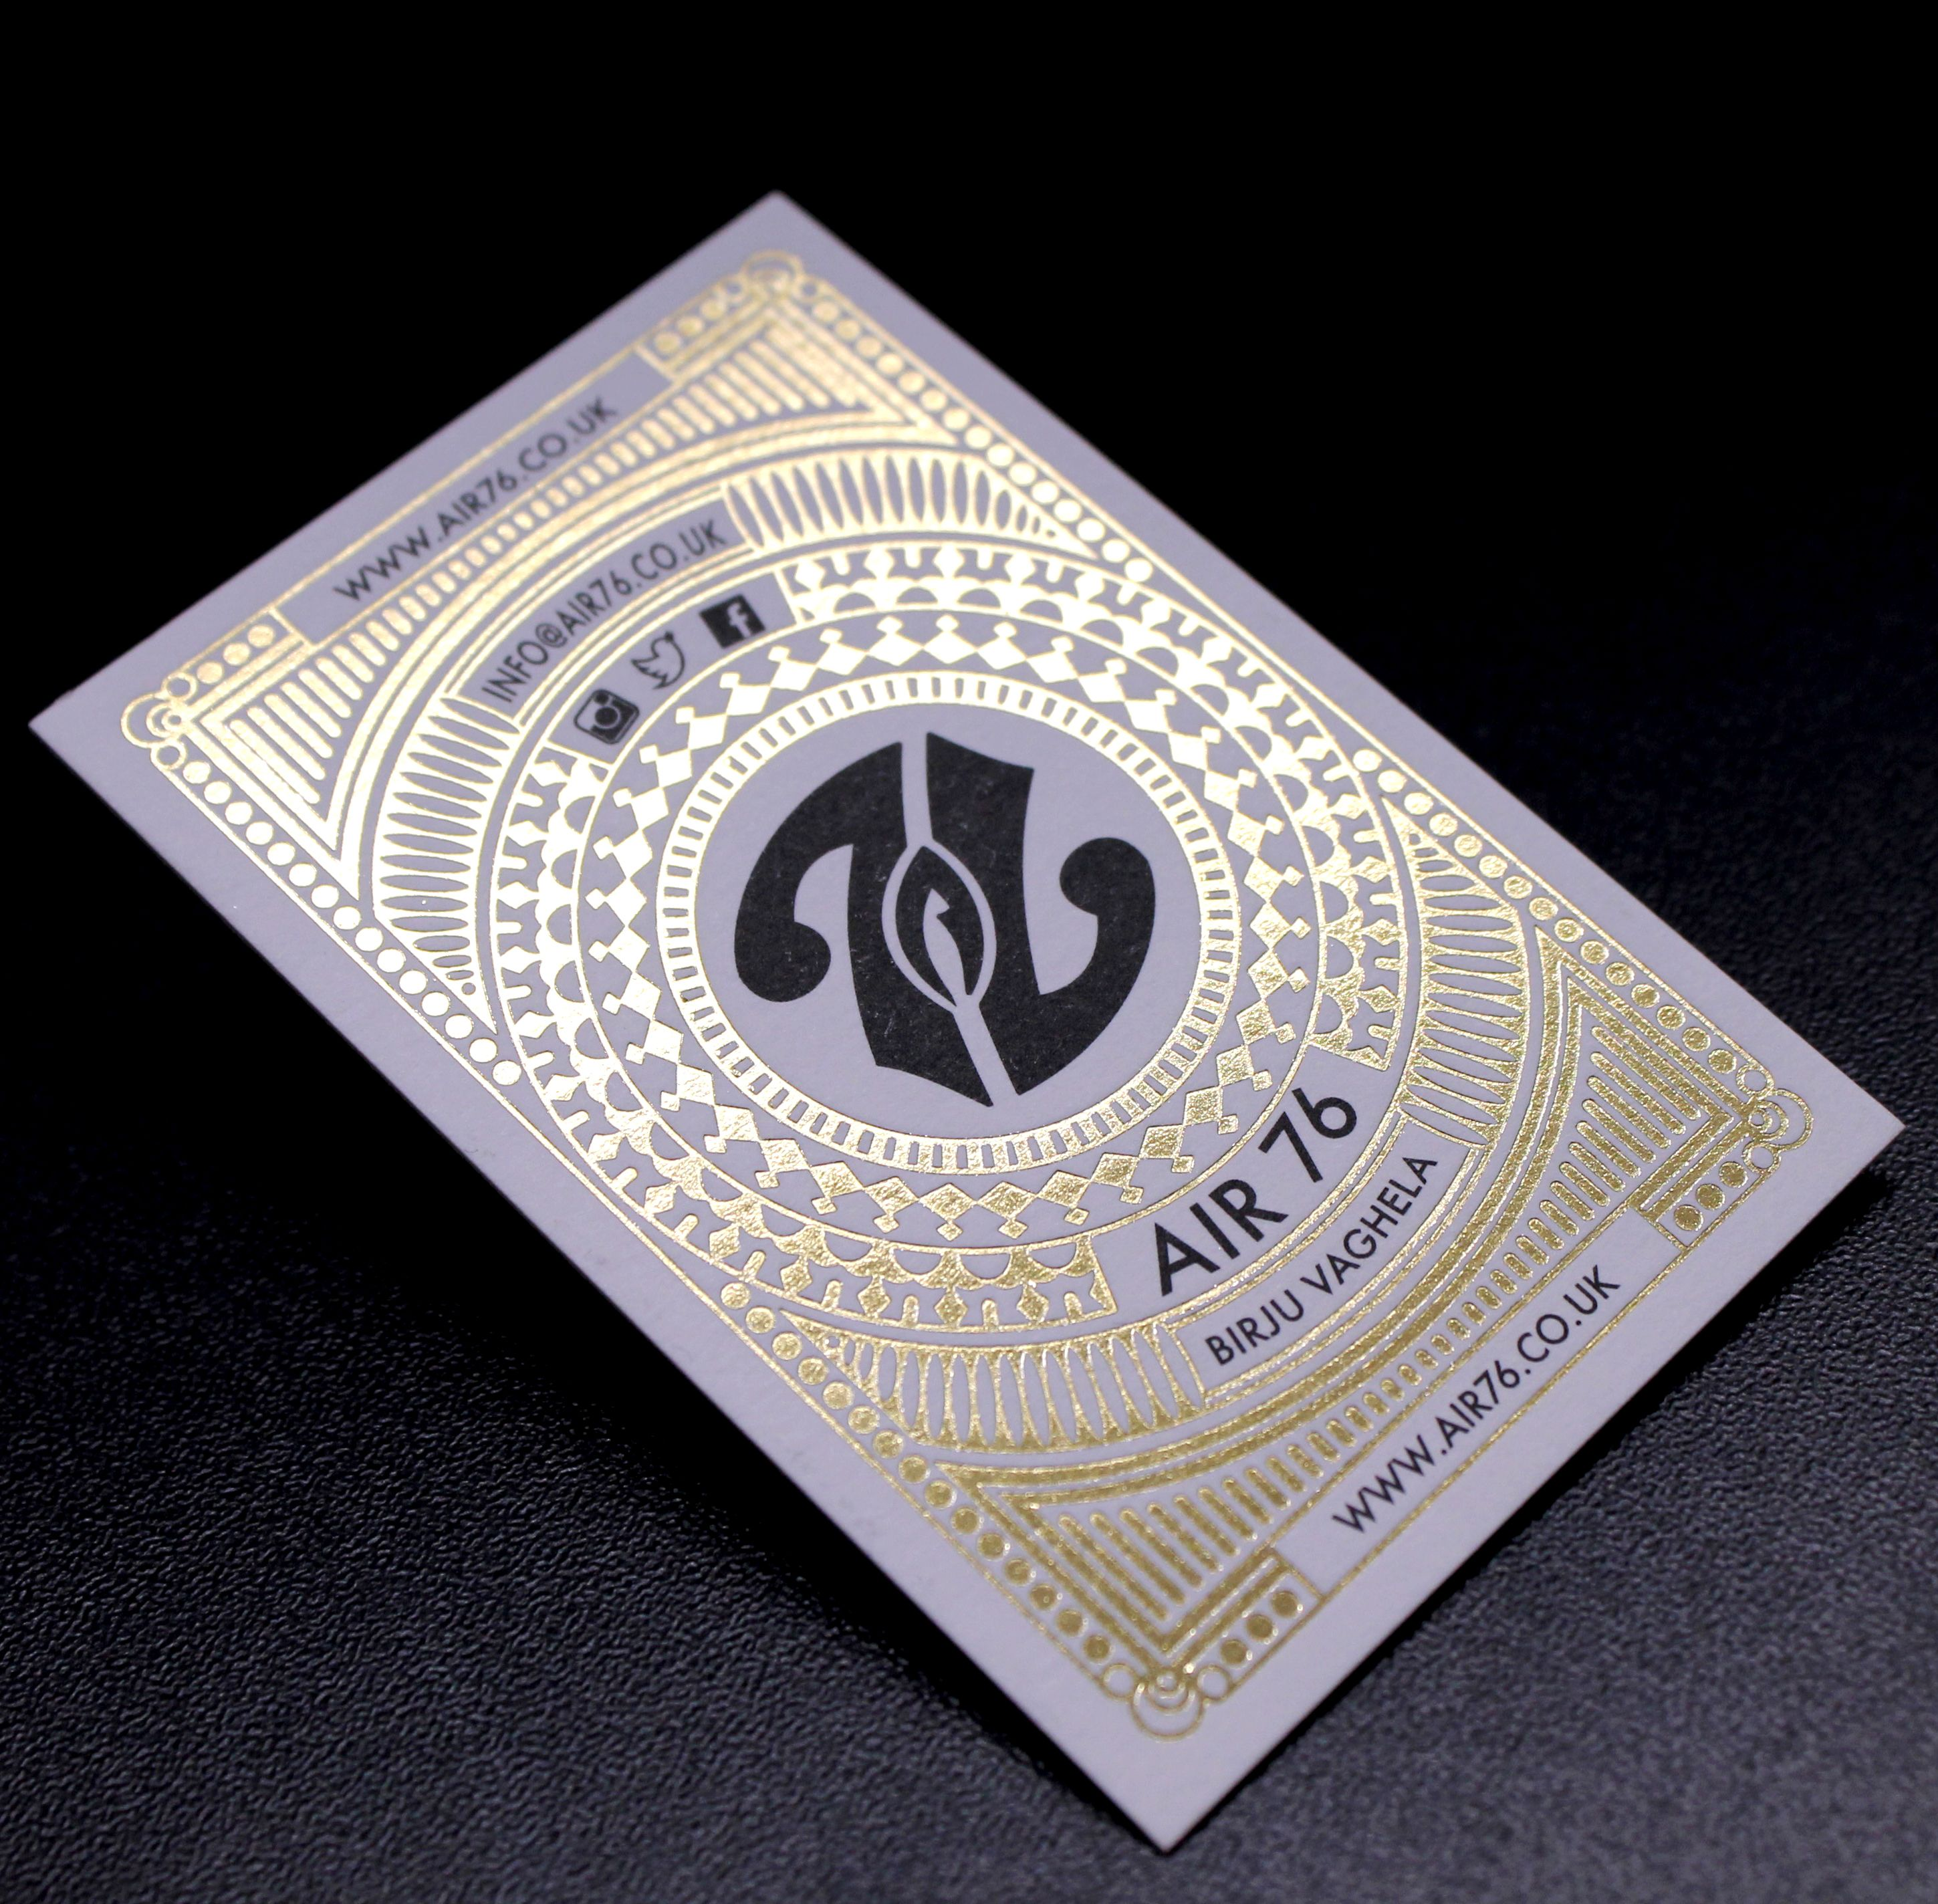 Intricate gold foil business cards with black litho printed details ...